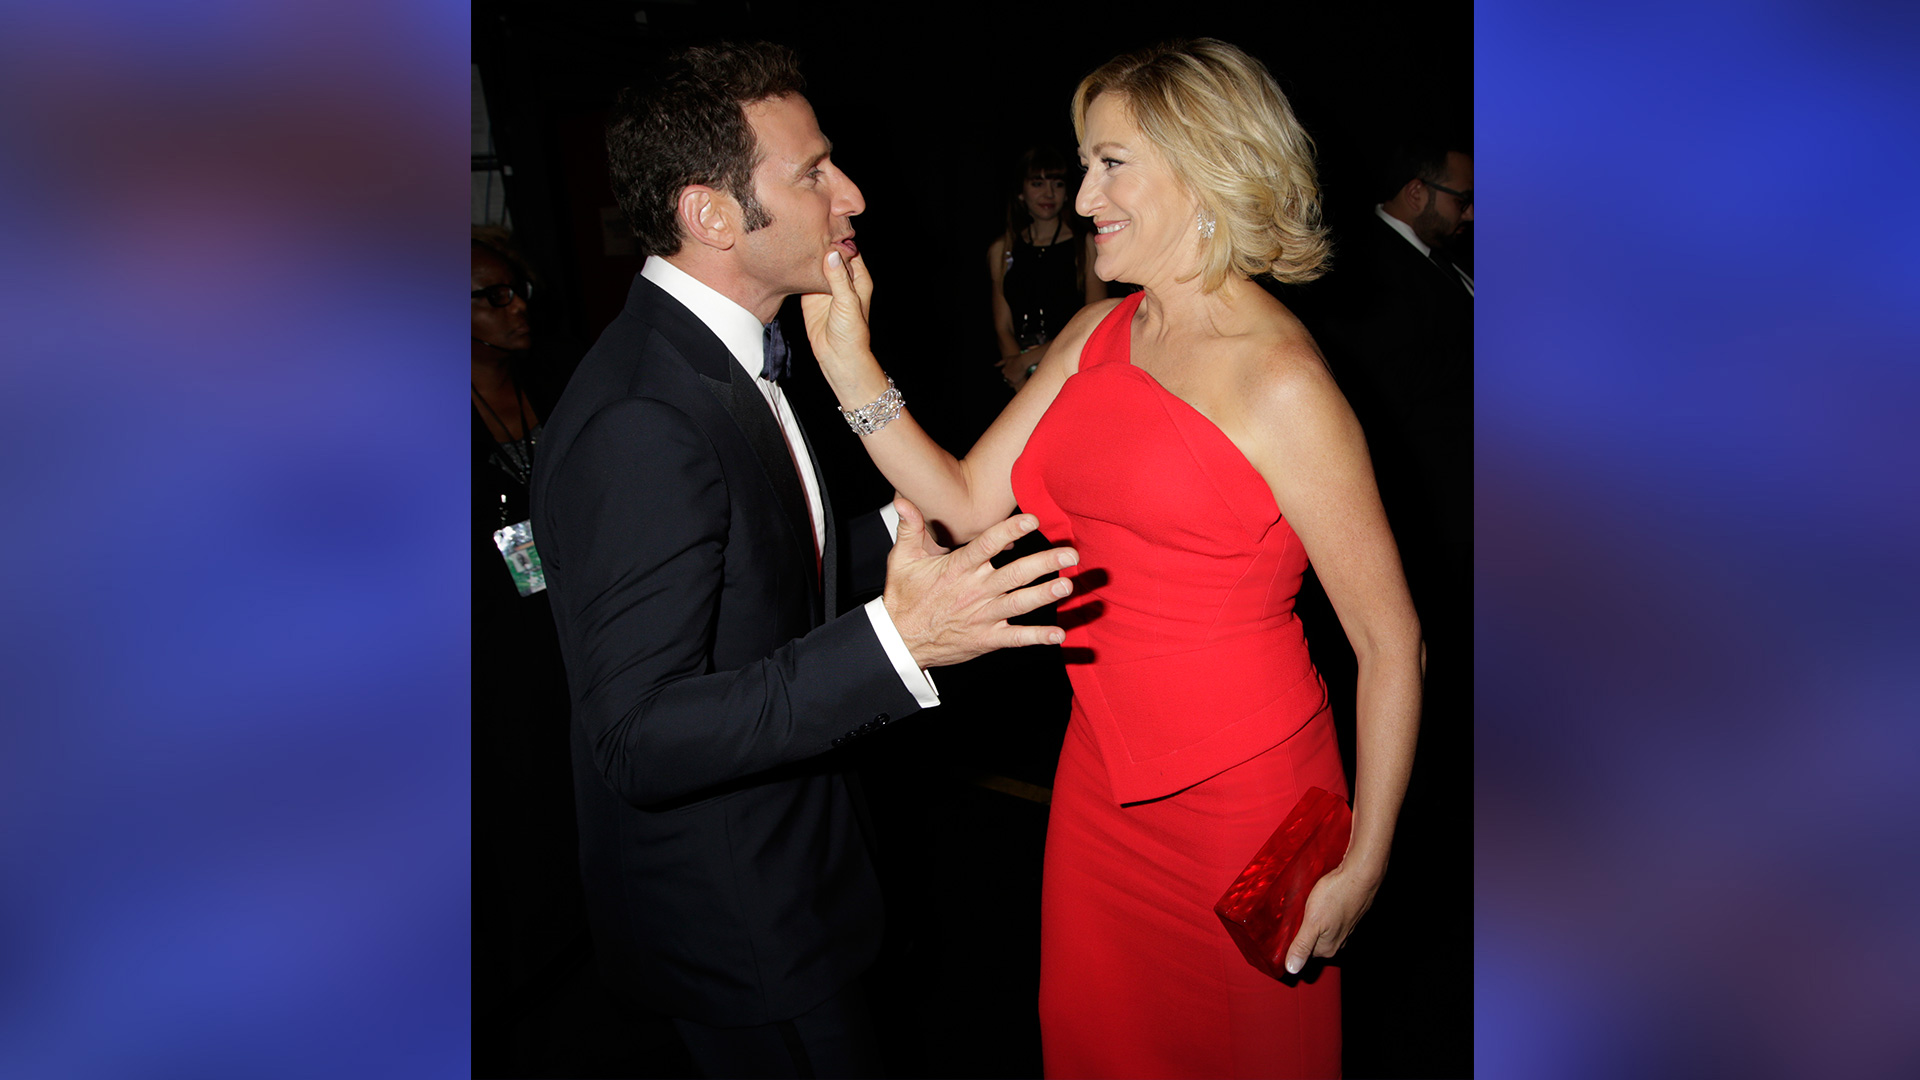 Edie Falco sweetly grabs Mark Feuerstein's face backstage at the Emmys.